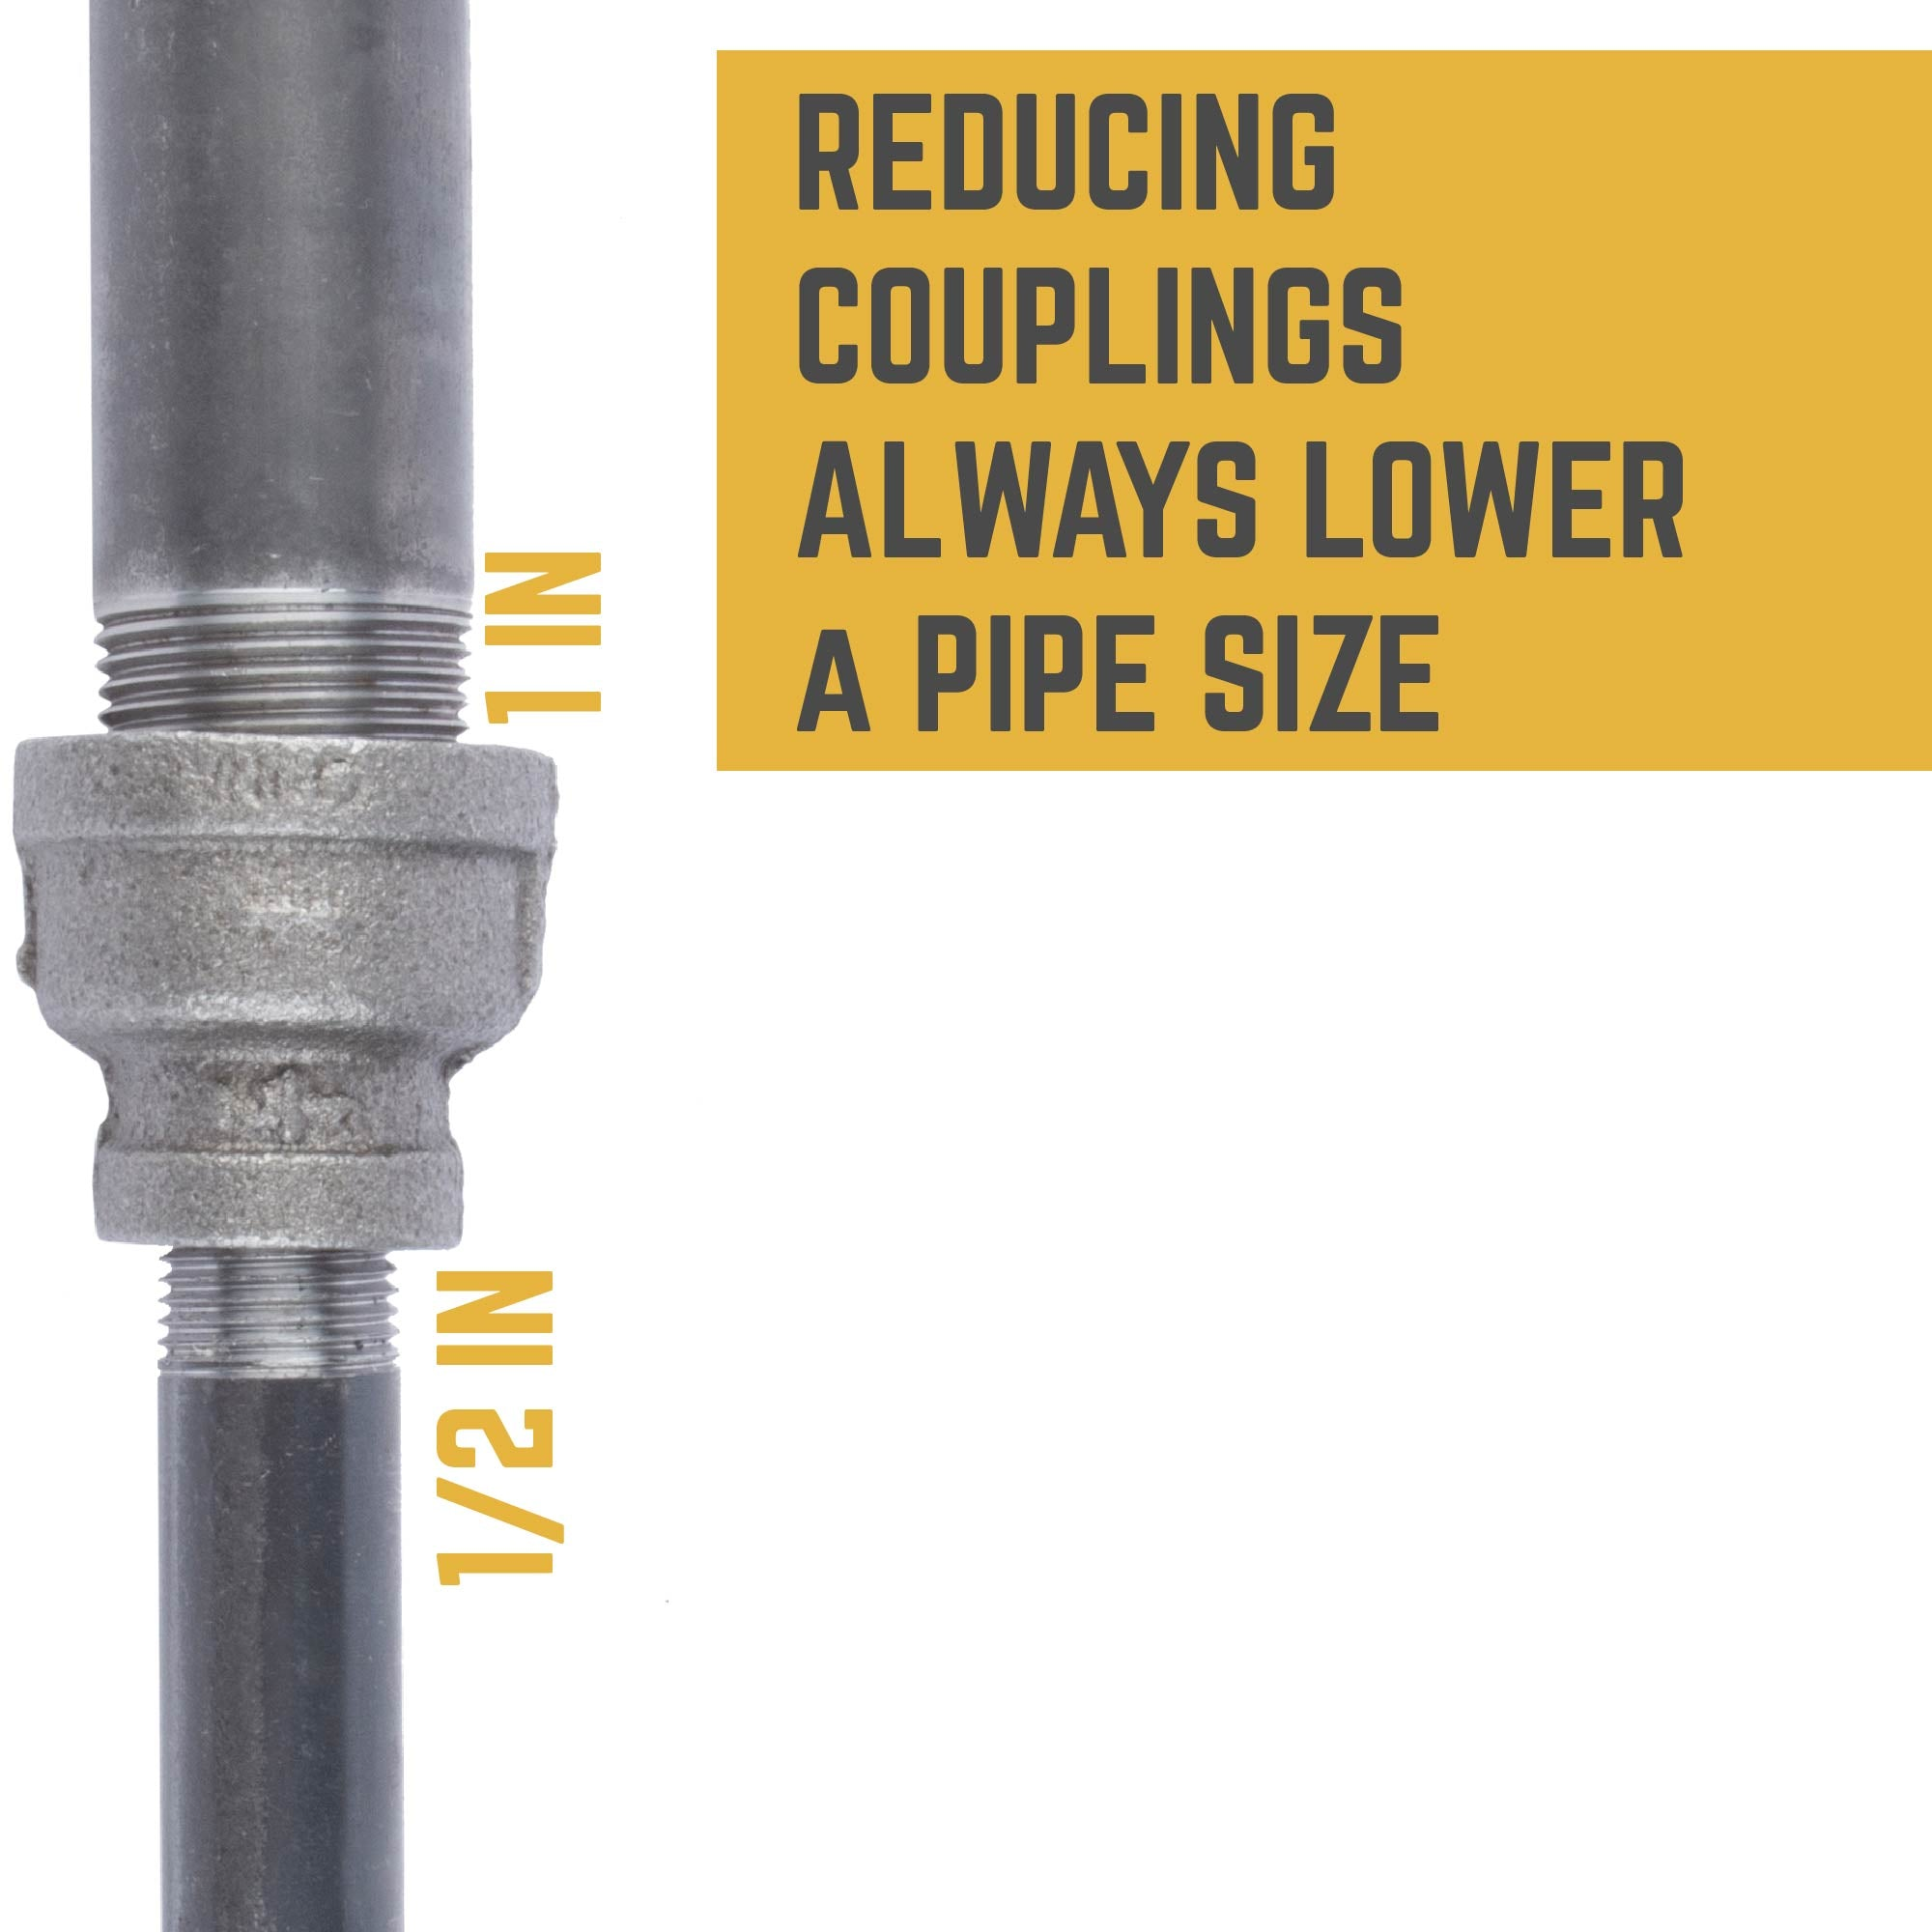 1 in. X 1/2 in. Reducing Coupling - Pipe Decor